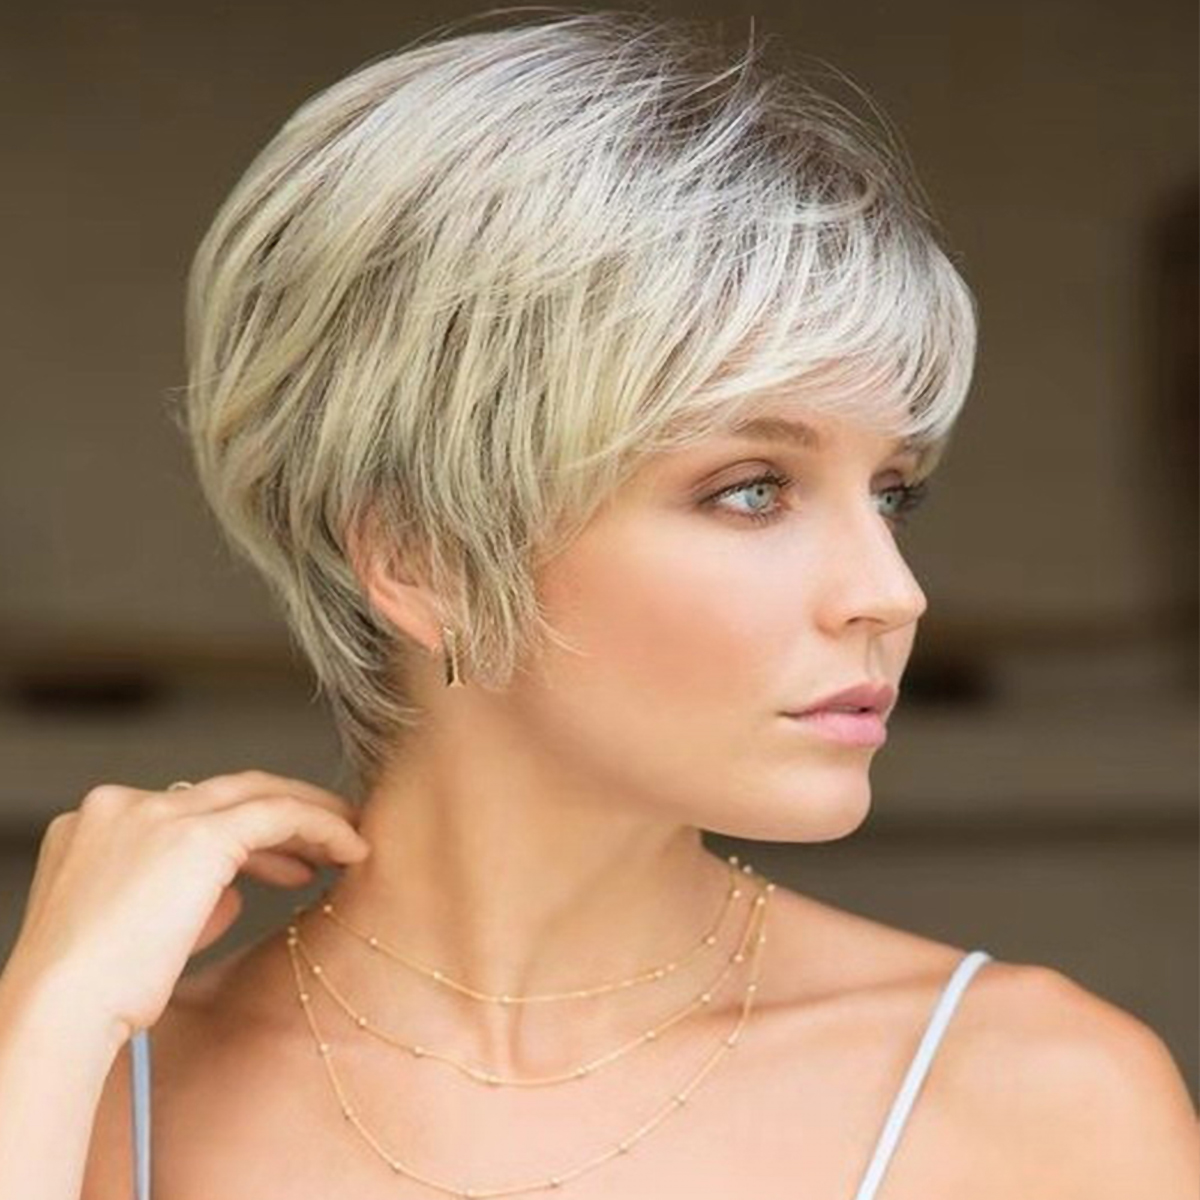 Short Pixie Cut Wig For Women Brown Hair Highlight Light Blonde Wigs With Bangs Ebay